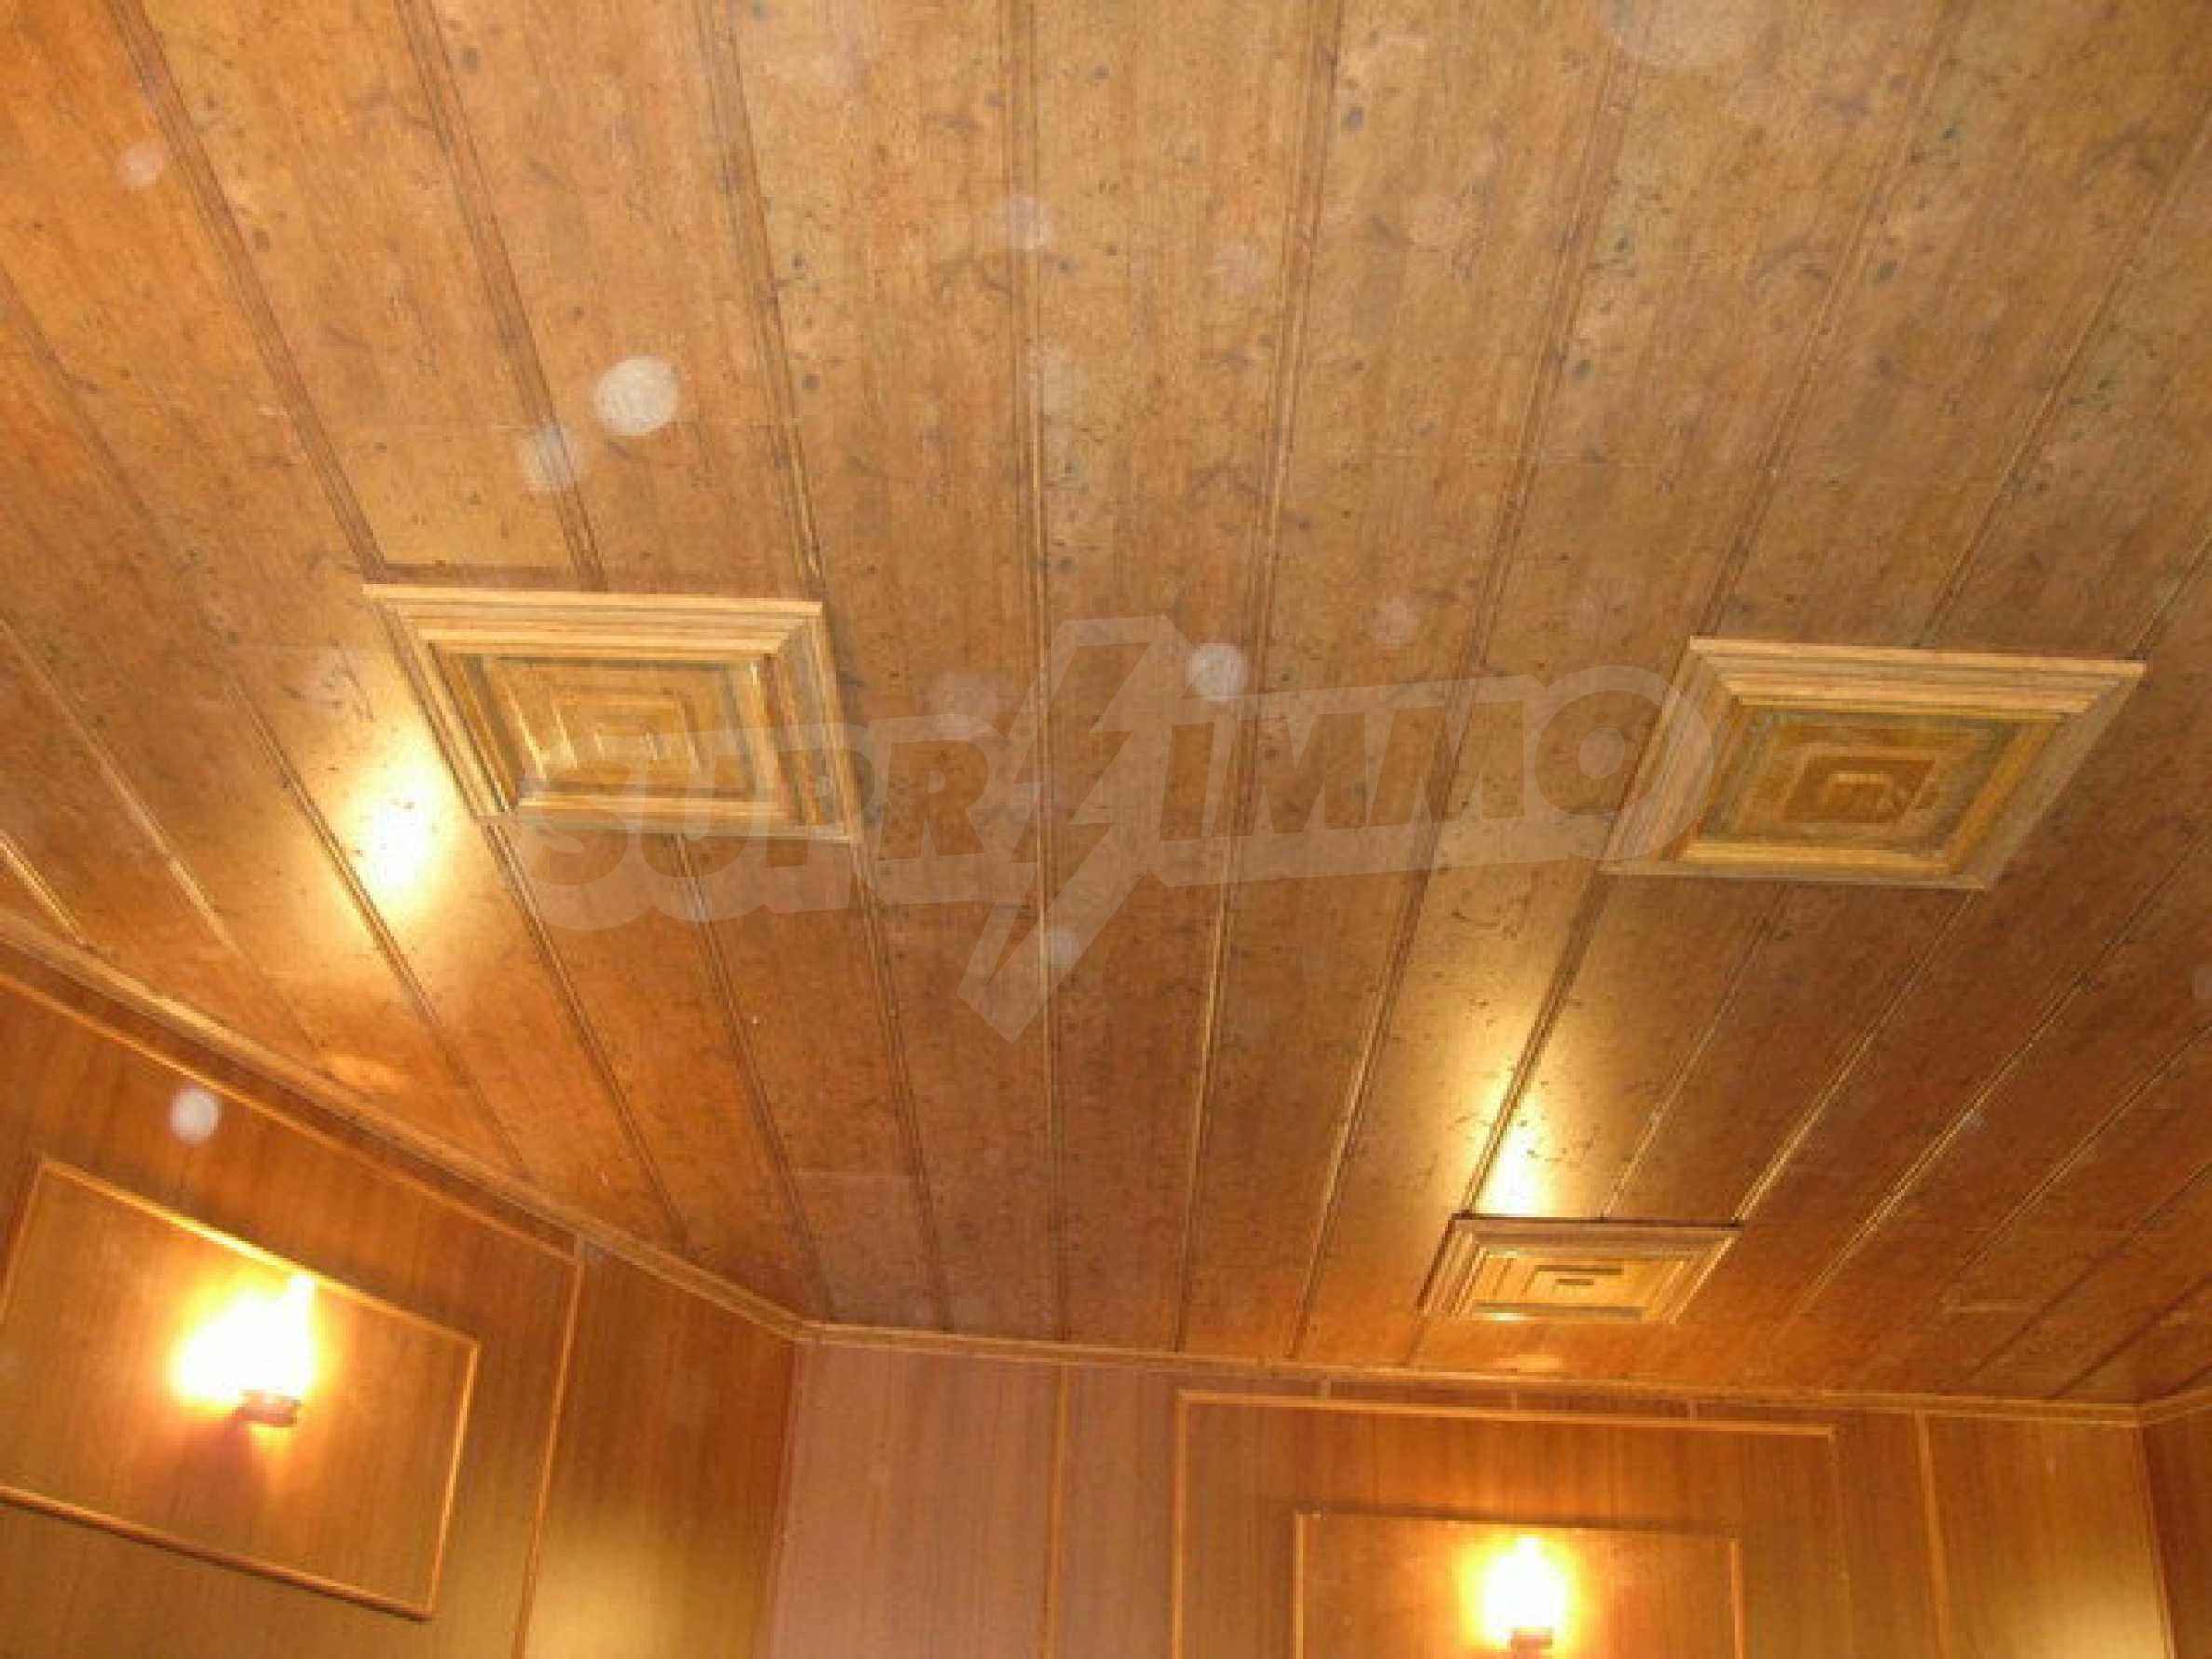 Commercial property on 3 levels for sale in Veliko Tarnovo  61